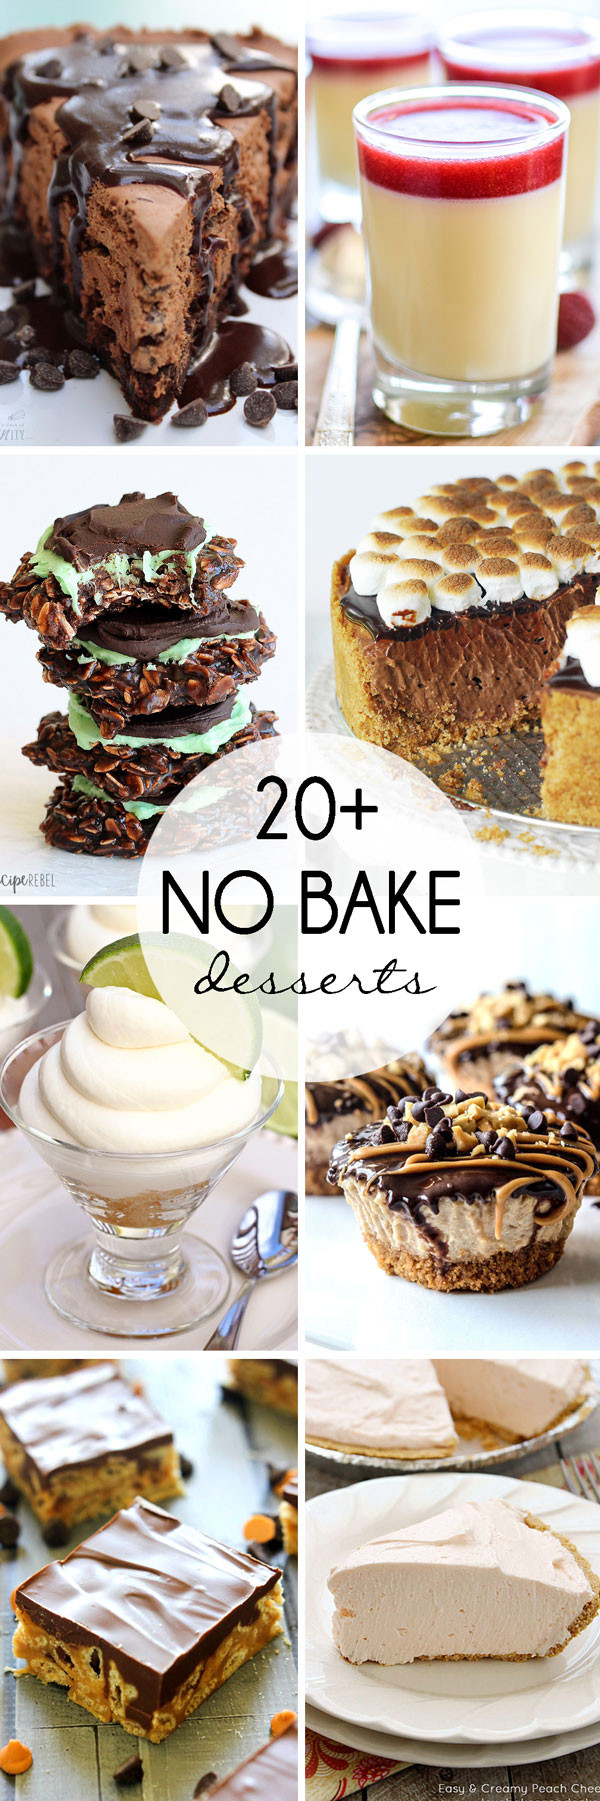 No Bake Summer Desserts  20 No Bake Desserts for Summer